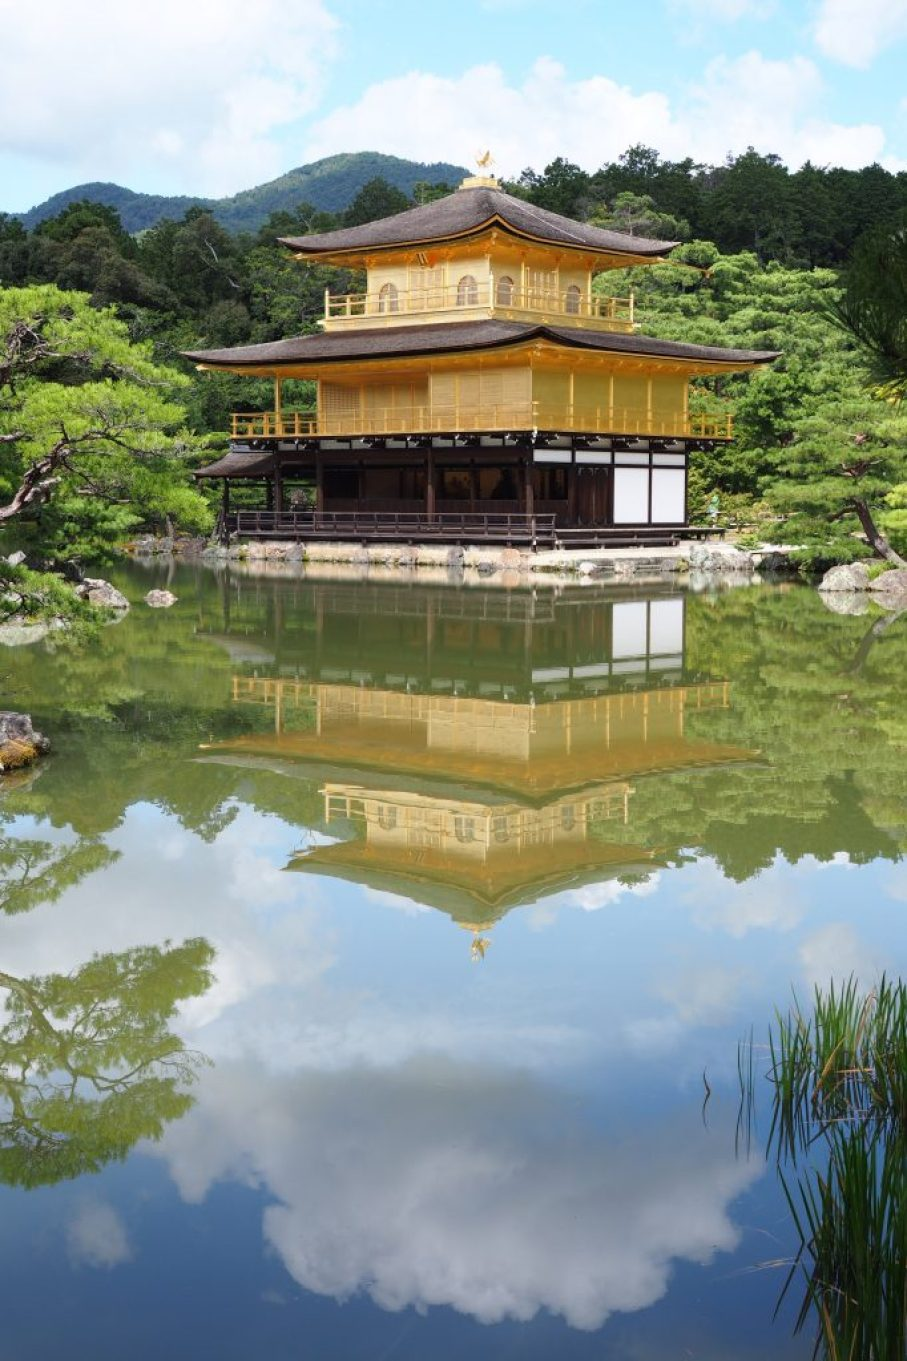 Golden Pavilion Kyoto reflection